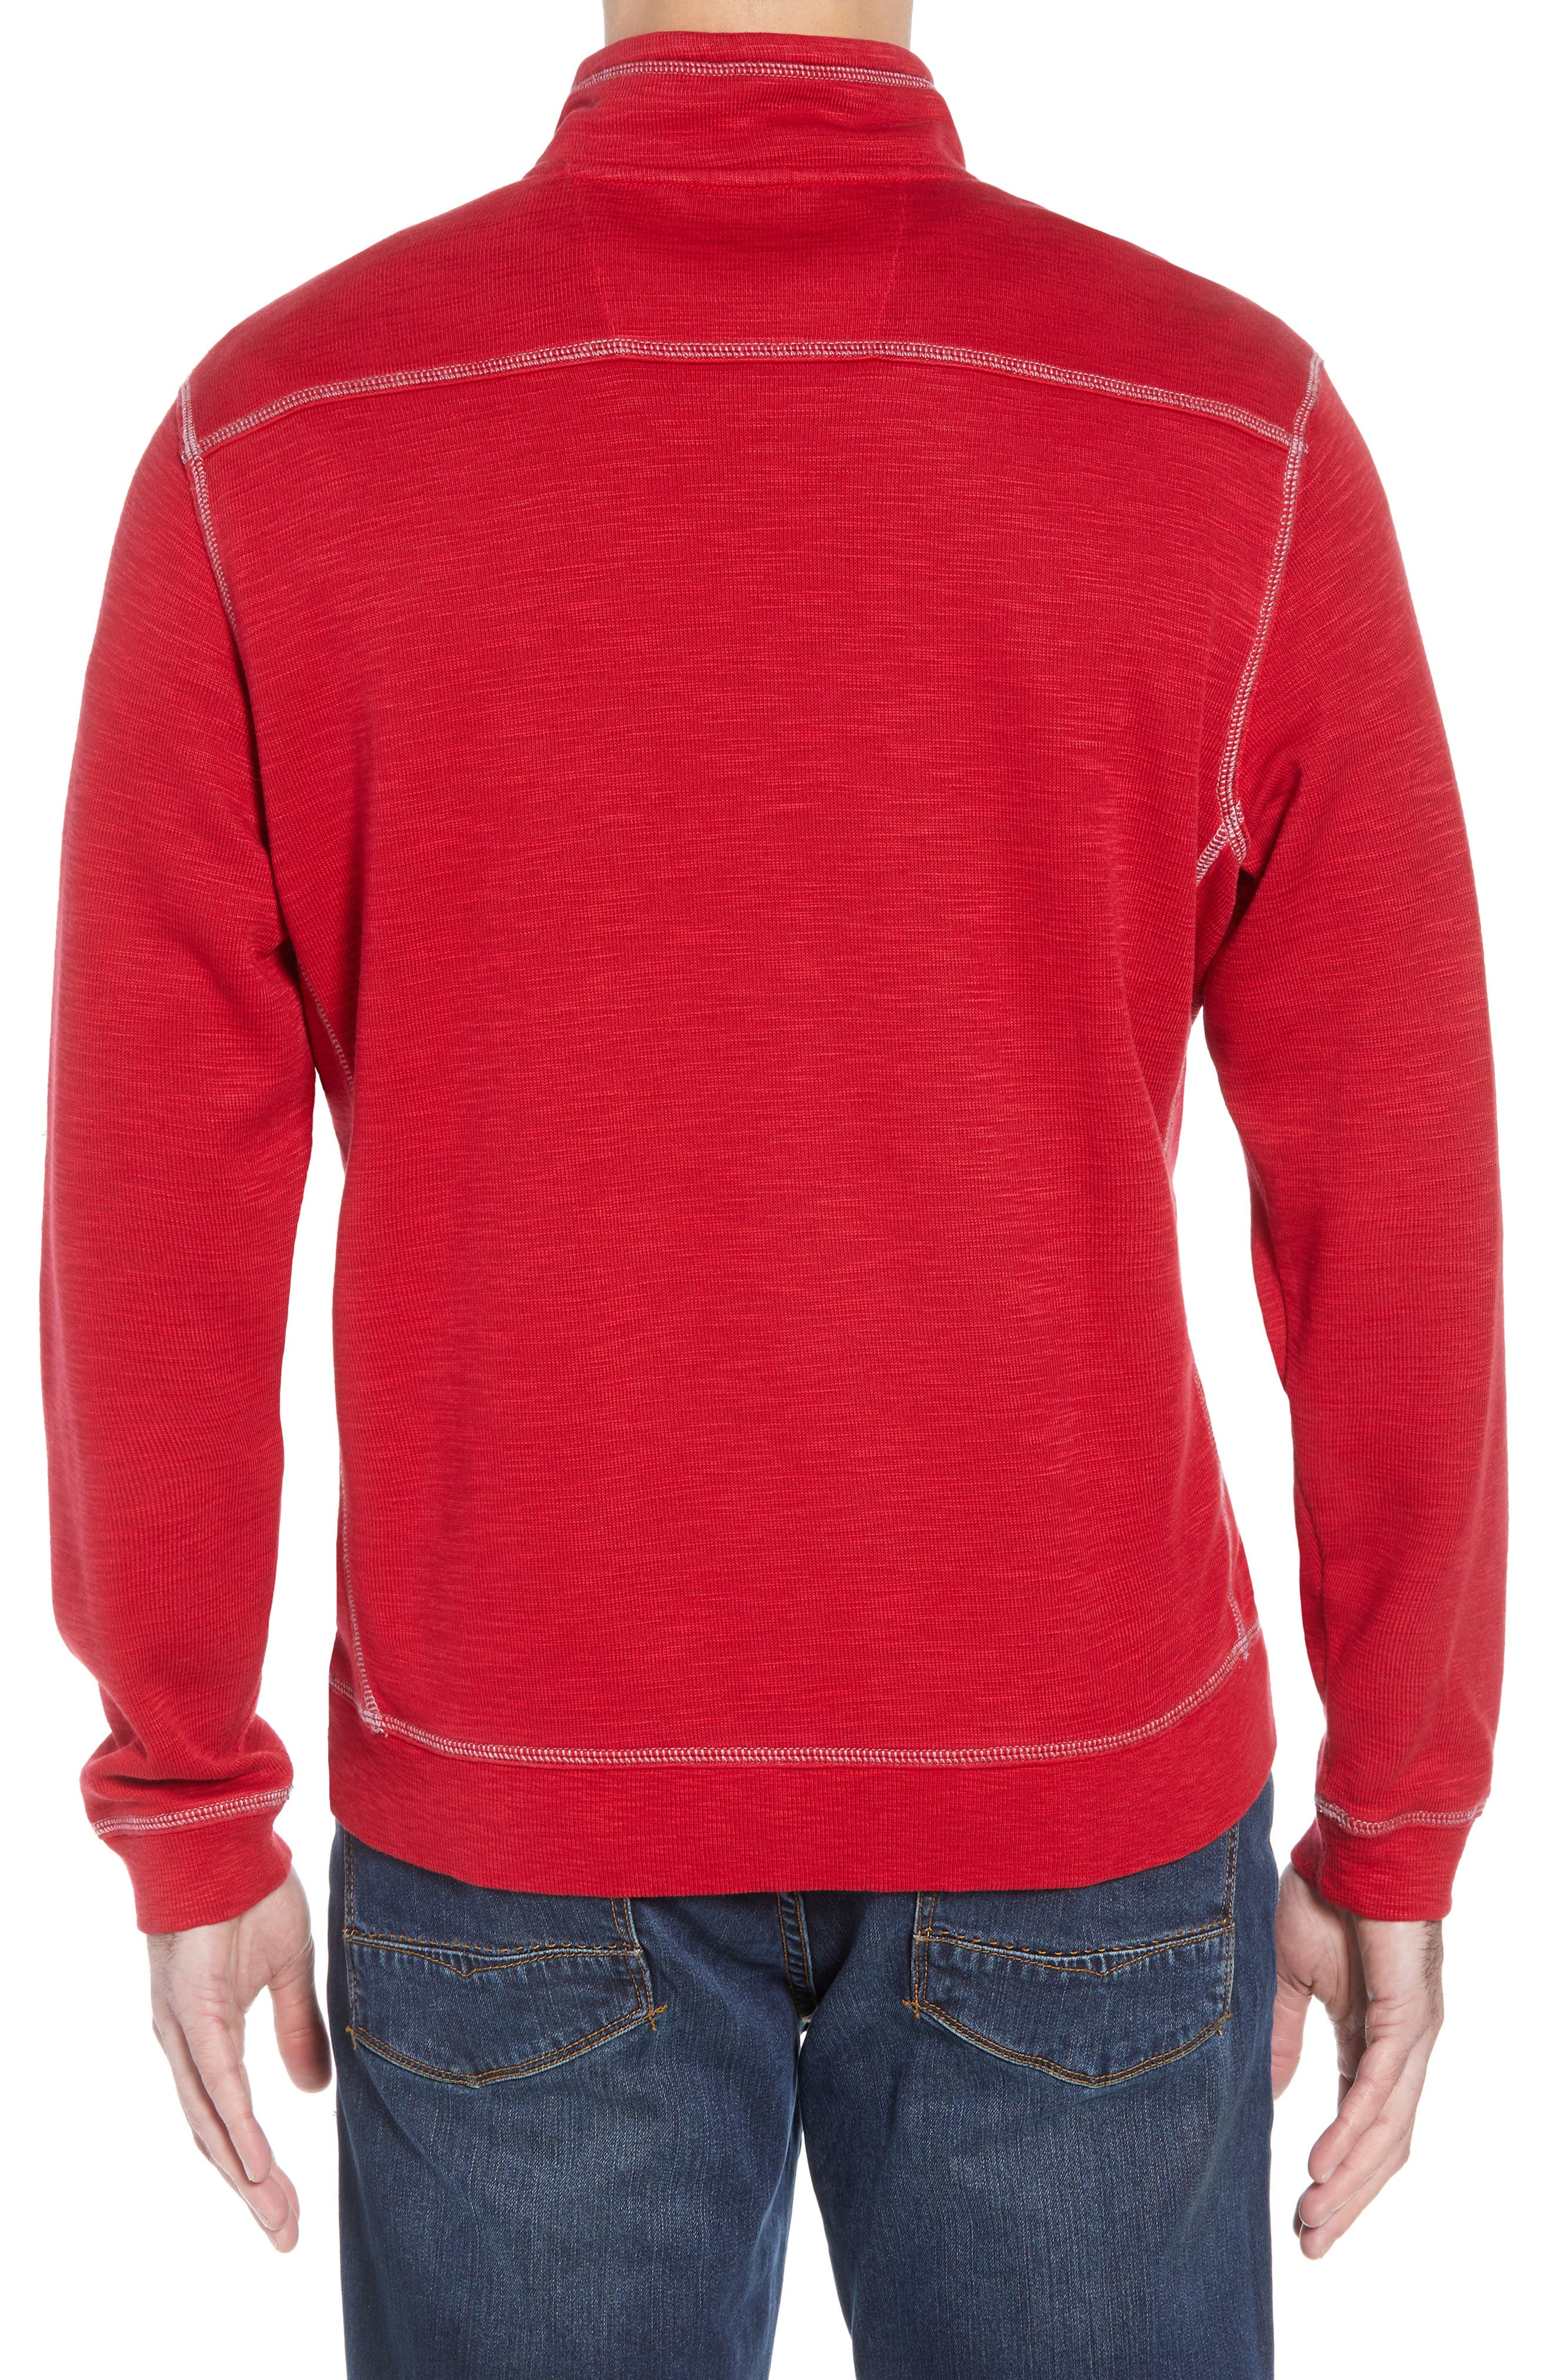 Tobago Bay Half Zip Pullover,                             Alternate thumbnail 2, color,                             SCOOTER RED